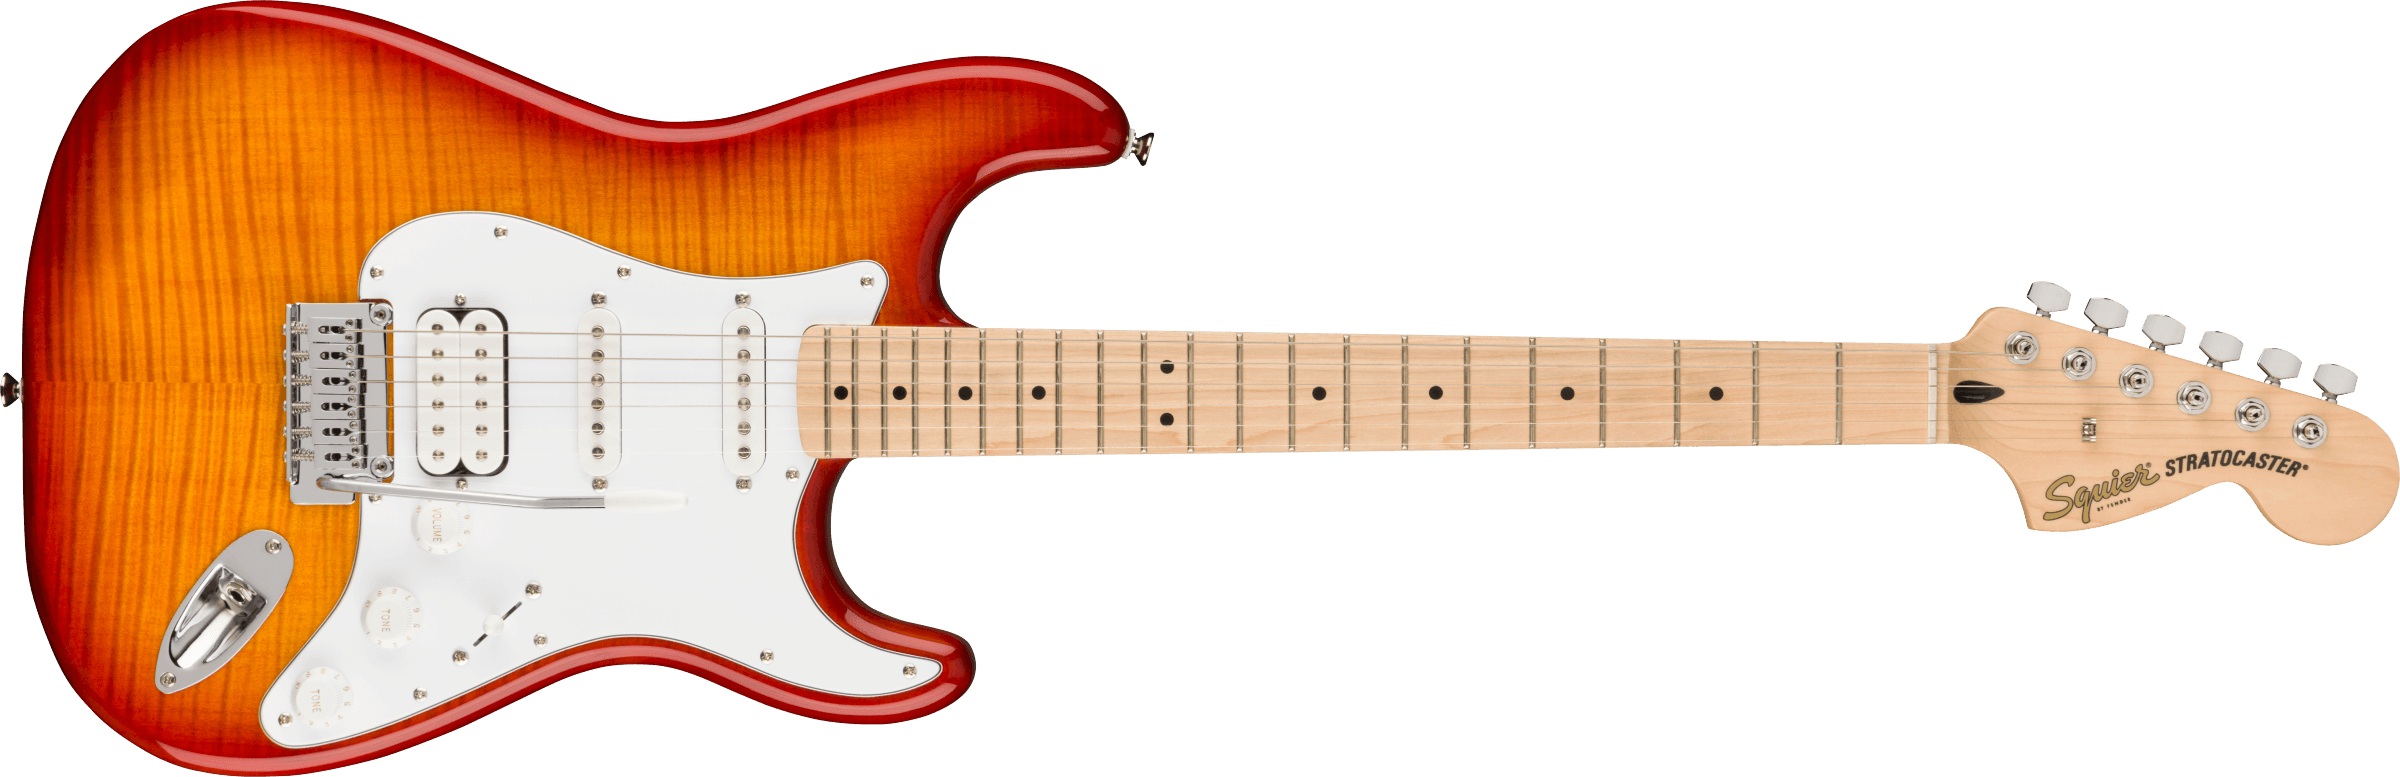 Squier Affinity Stratocaster FMT